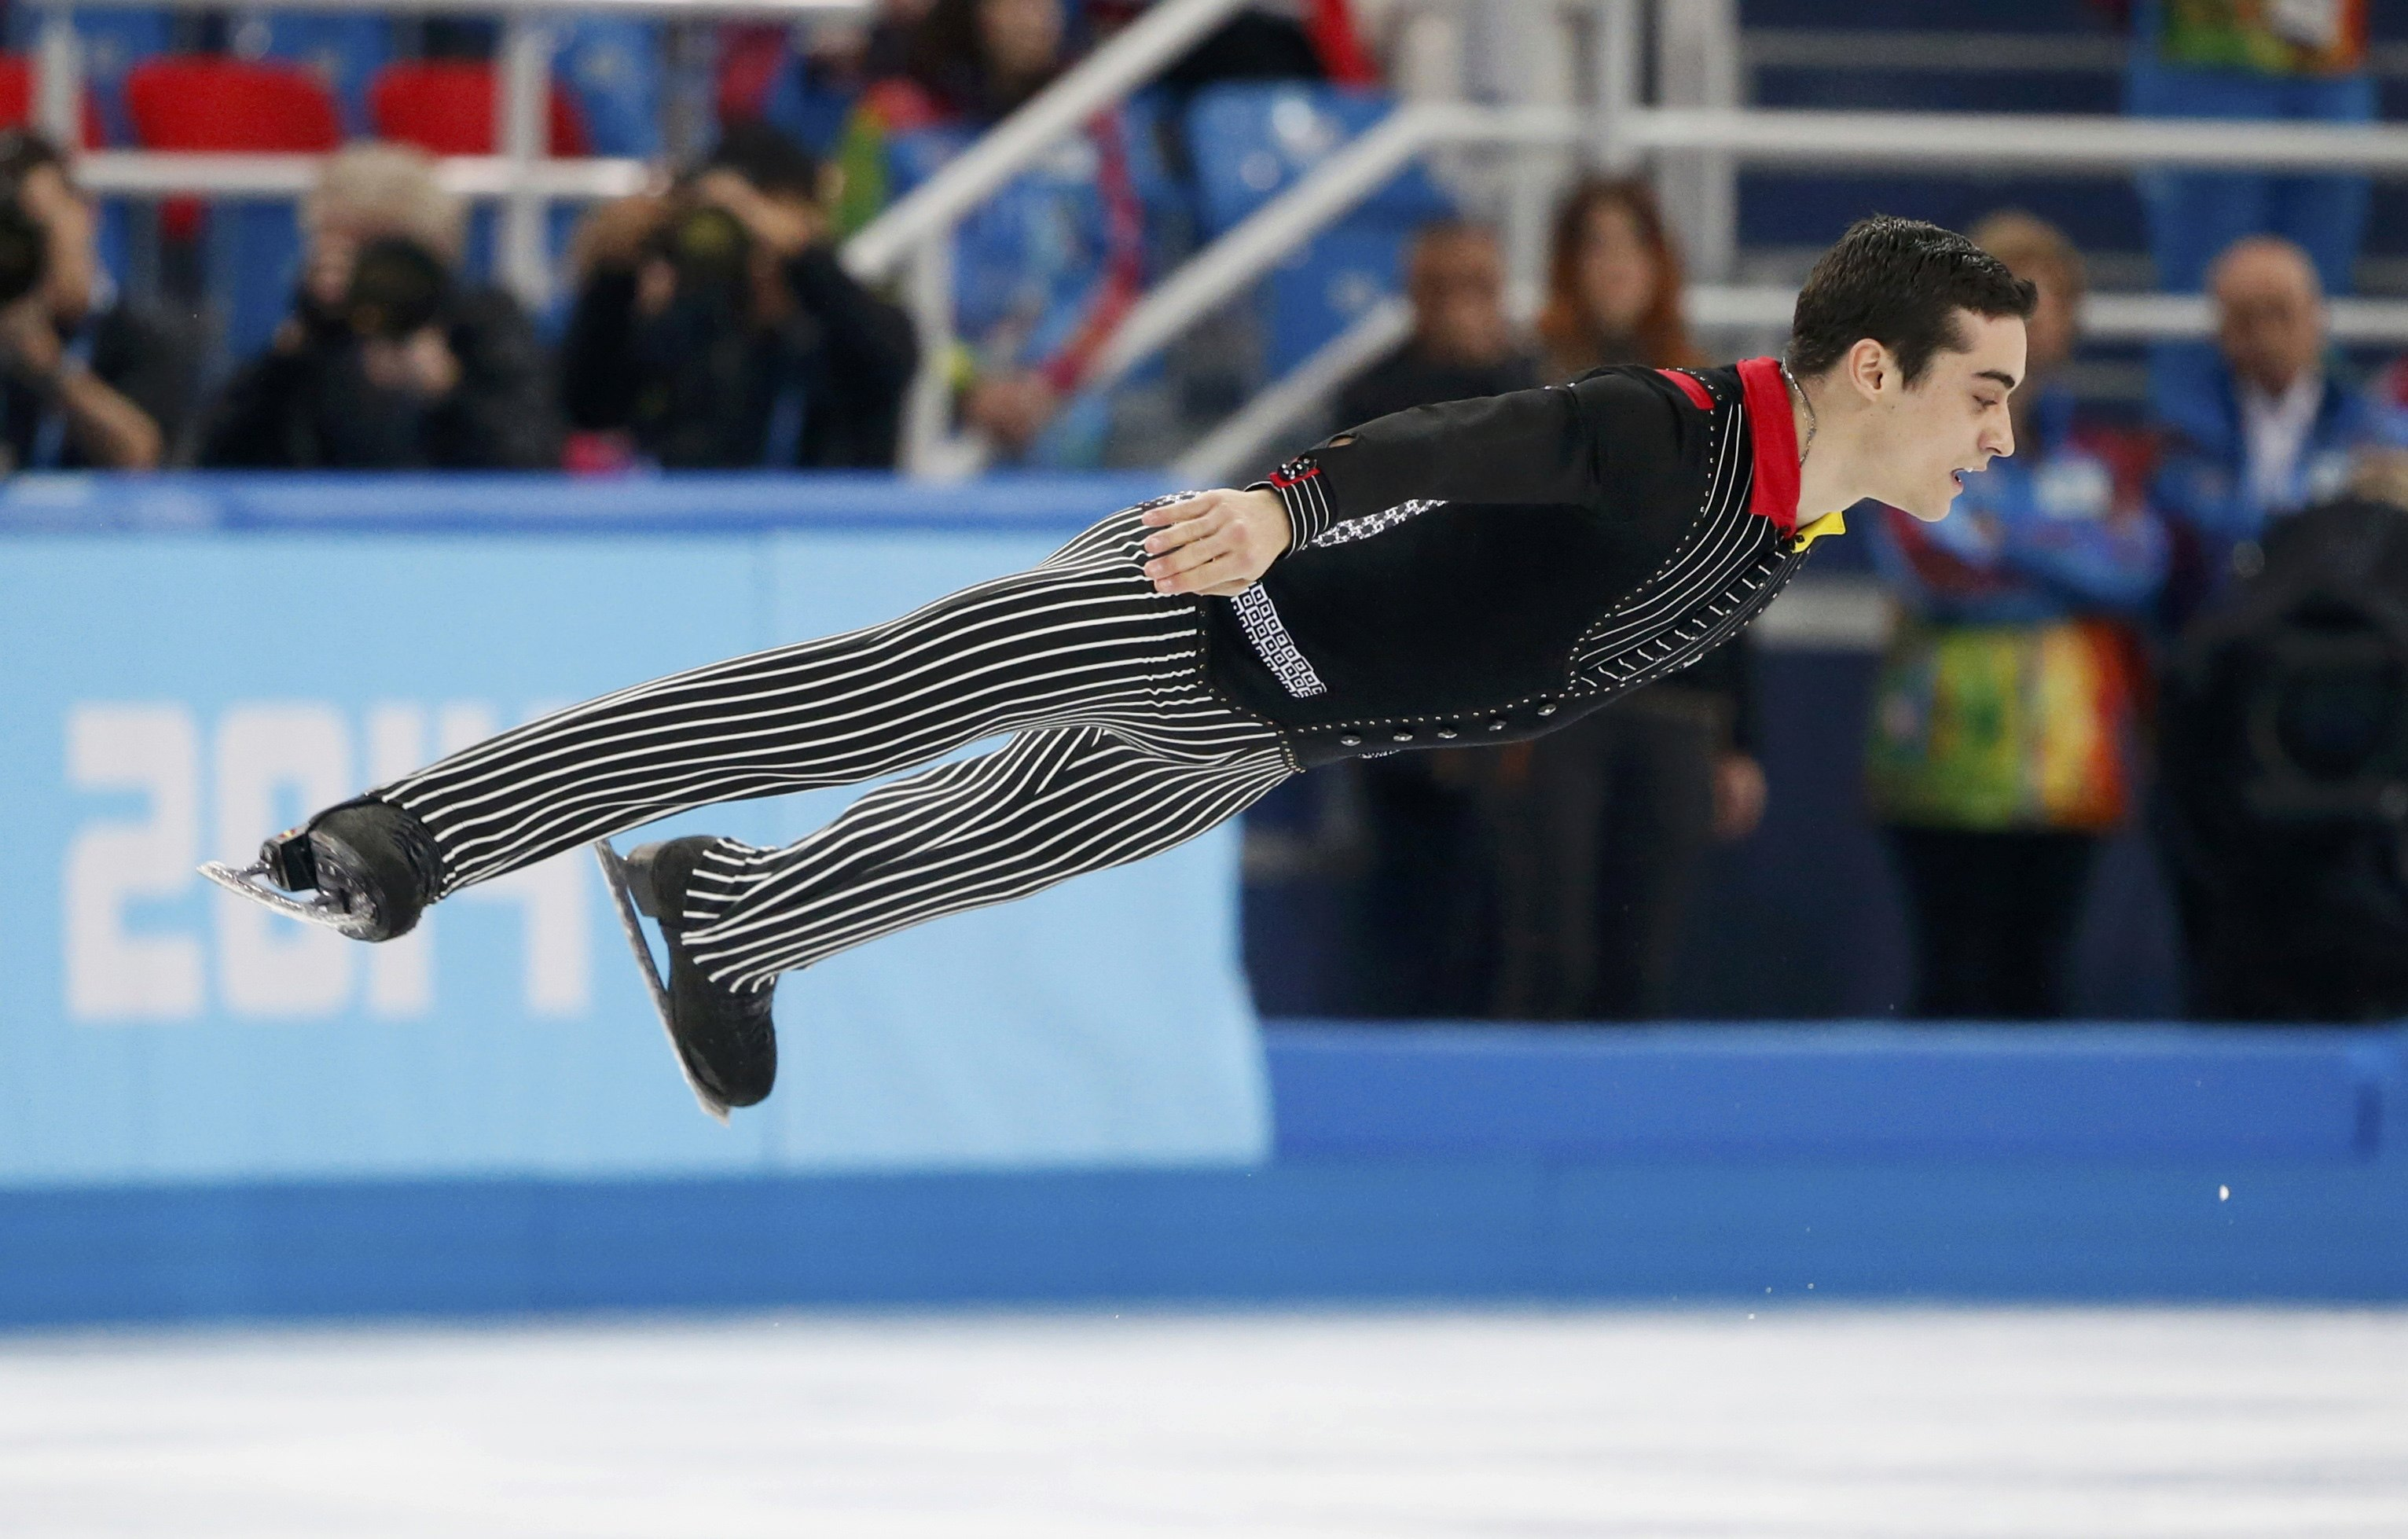 Sochi Olympics Day 8 Evgeni Plushenko Retires After Withdrawing From Olympics Us Crushes